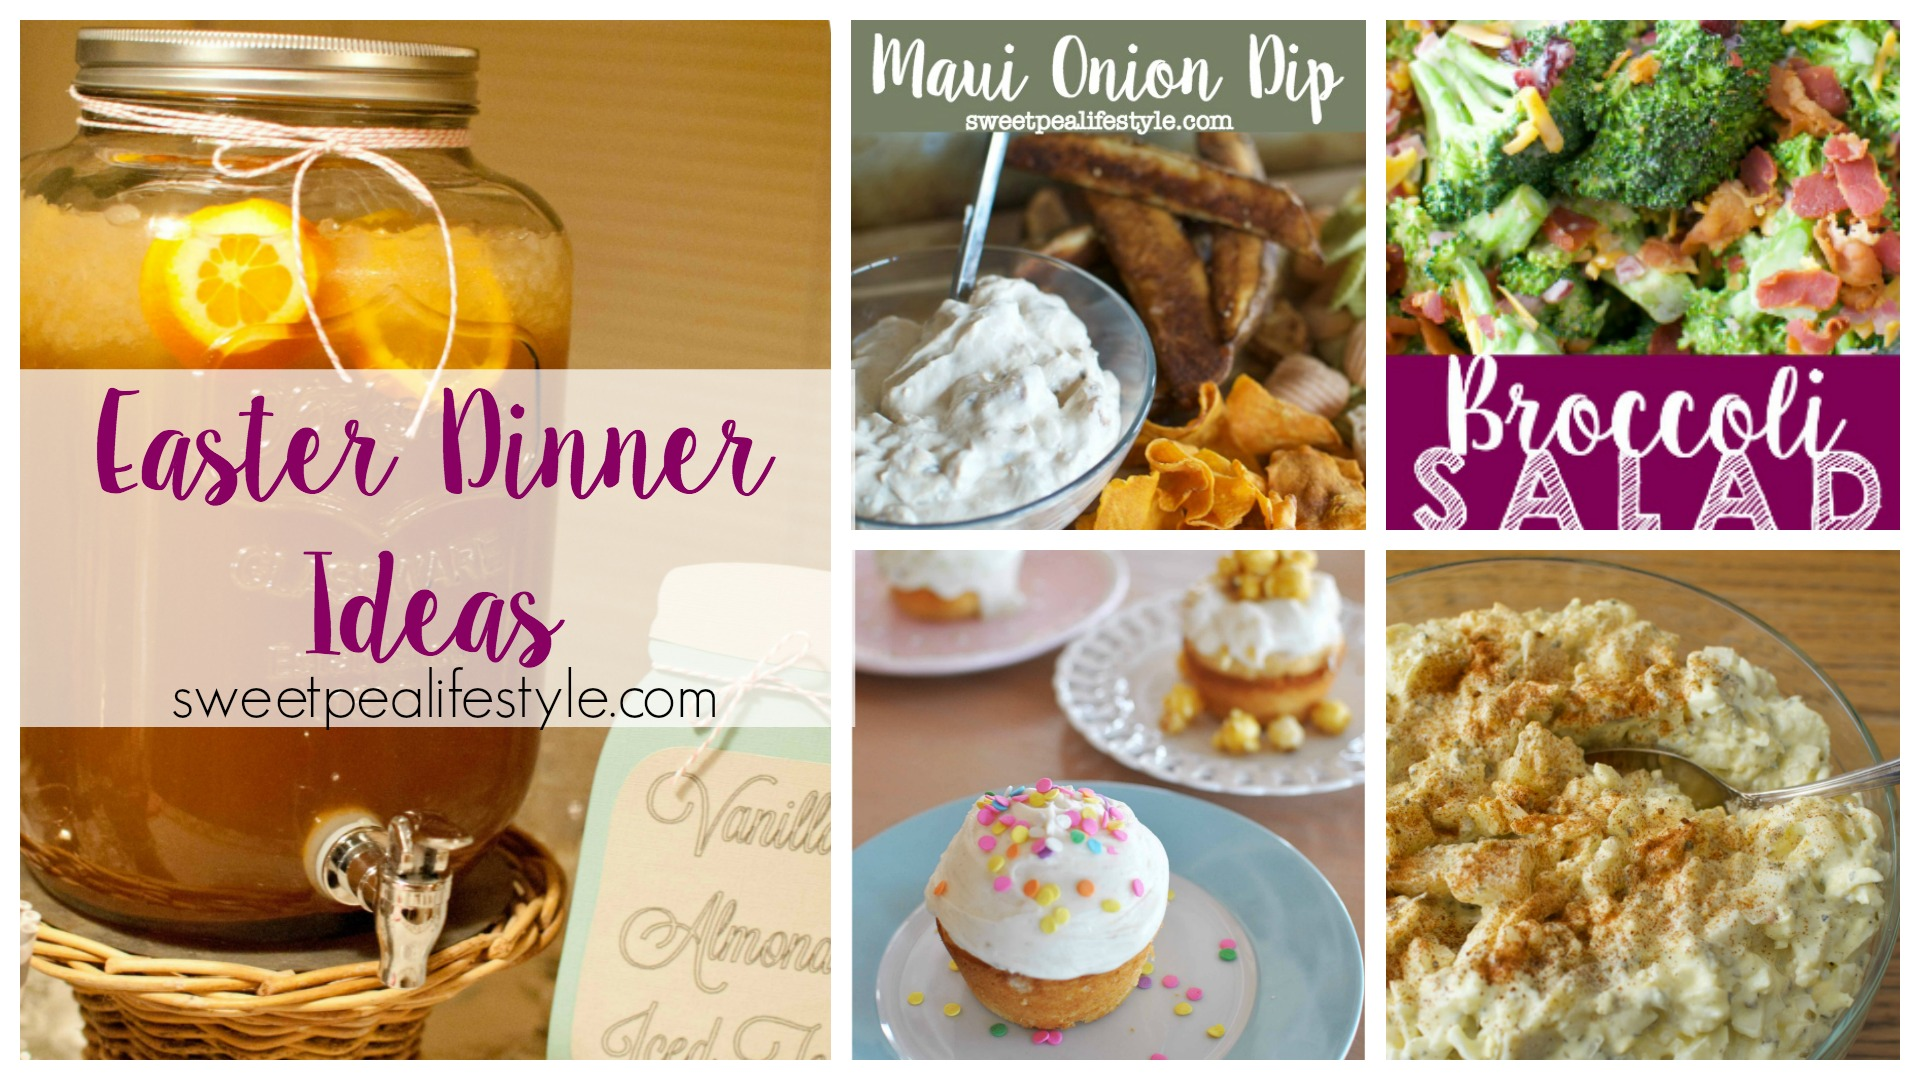 Easter Dinner Menu & Ideas